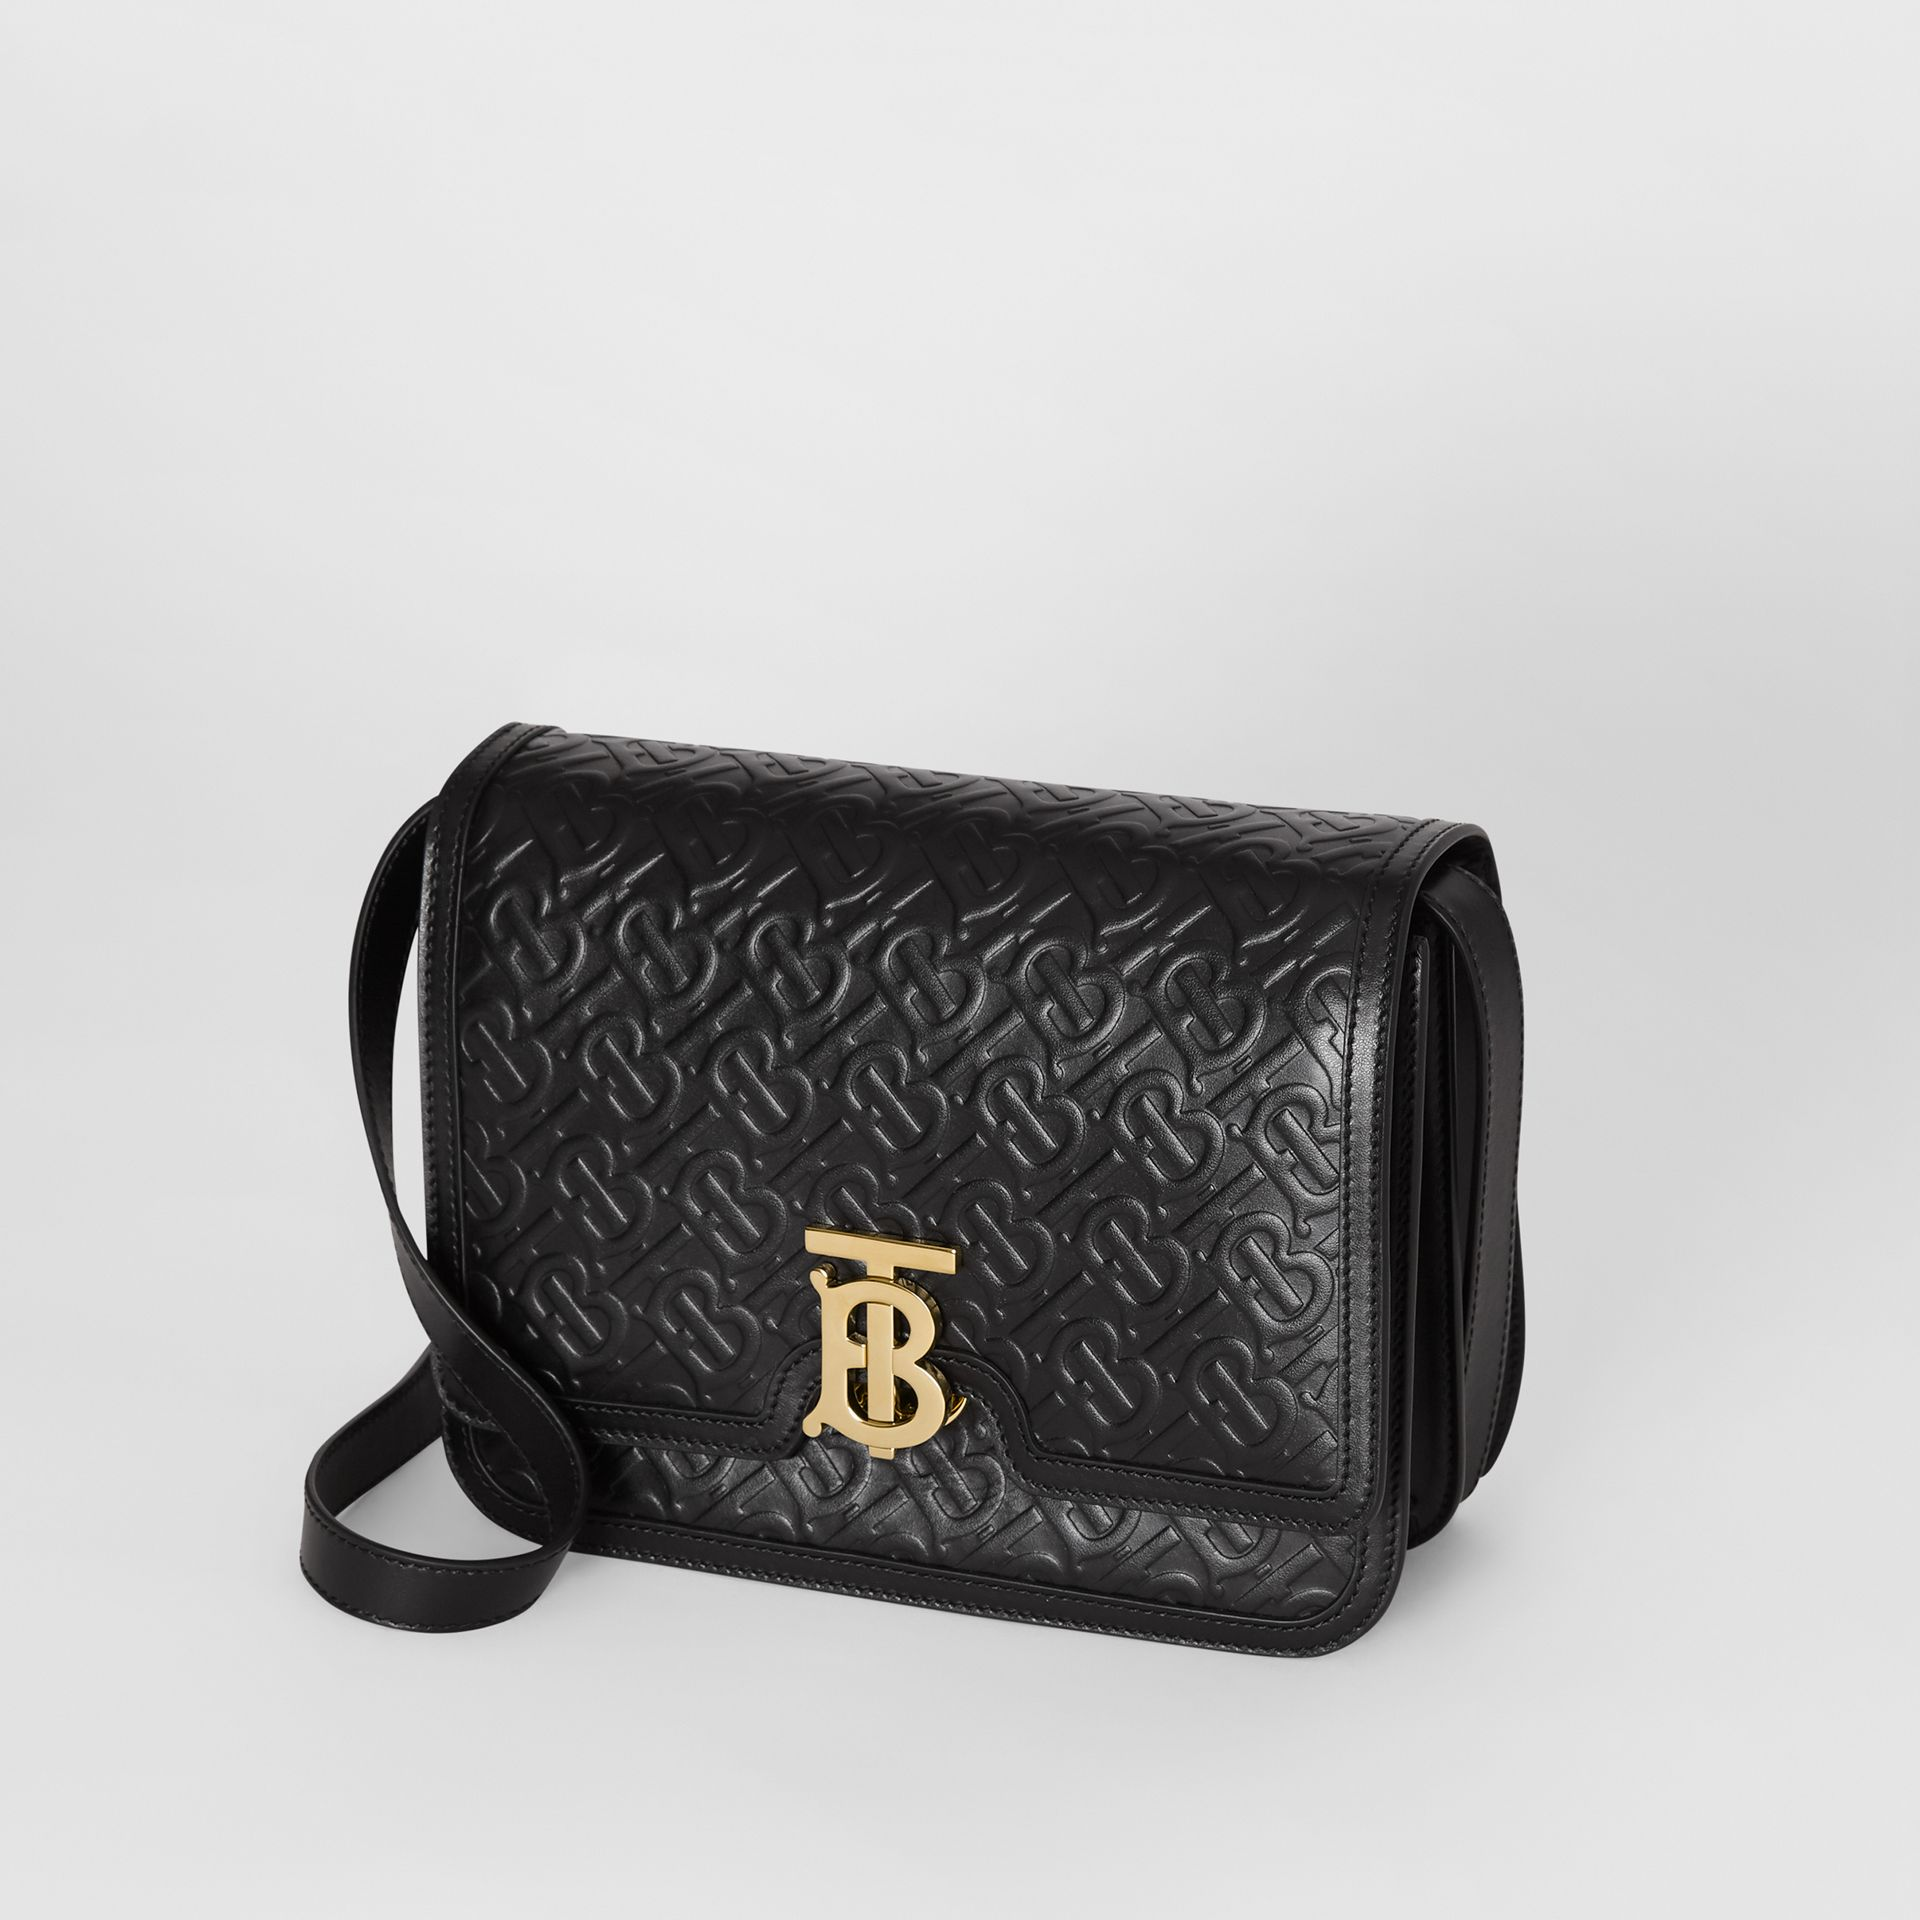 Medium Monogram Leather TB Bag in Black - Women | Burberry United Kingdom - gallery image 3